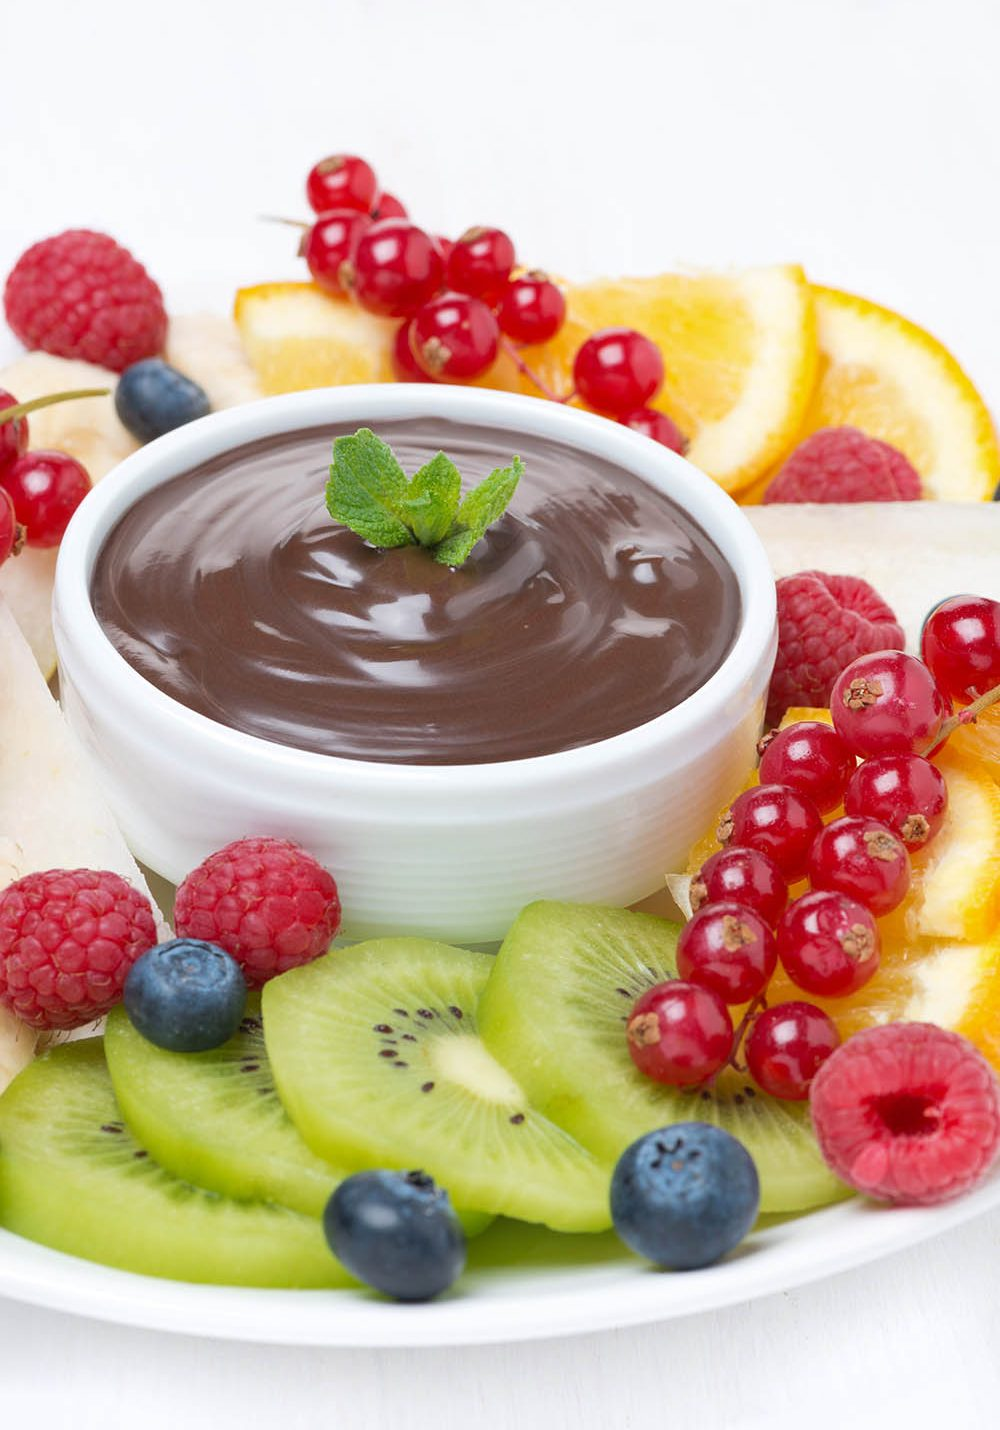 chocolate sauce, fresh fruit and berries, close-up